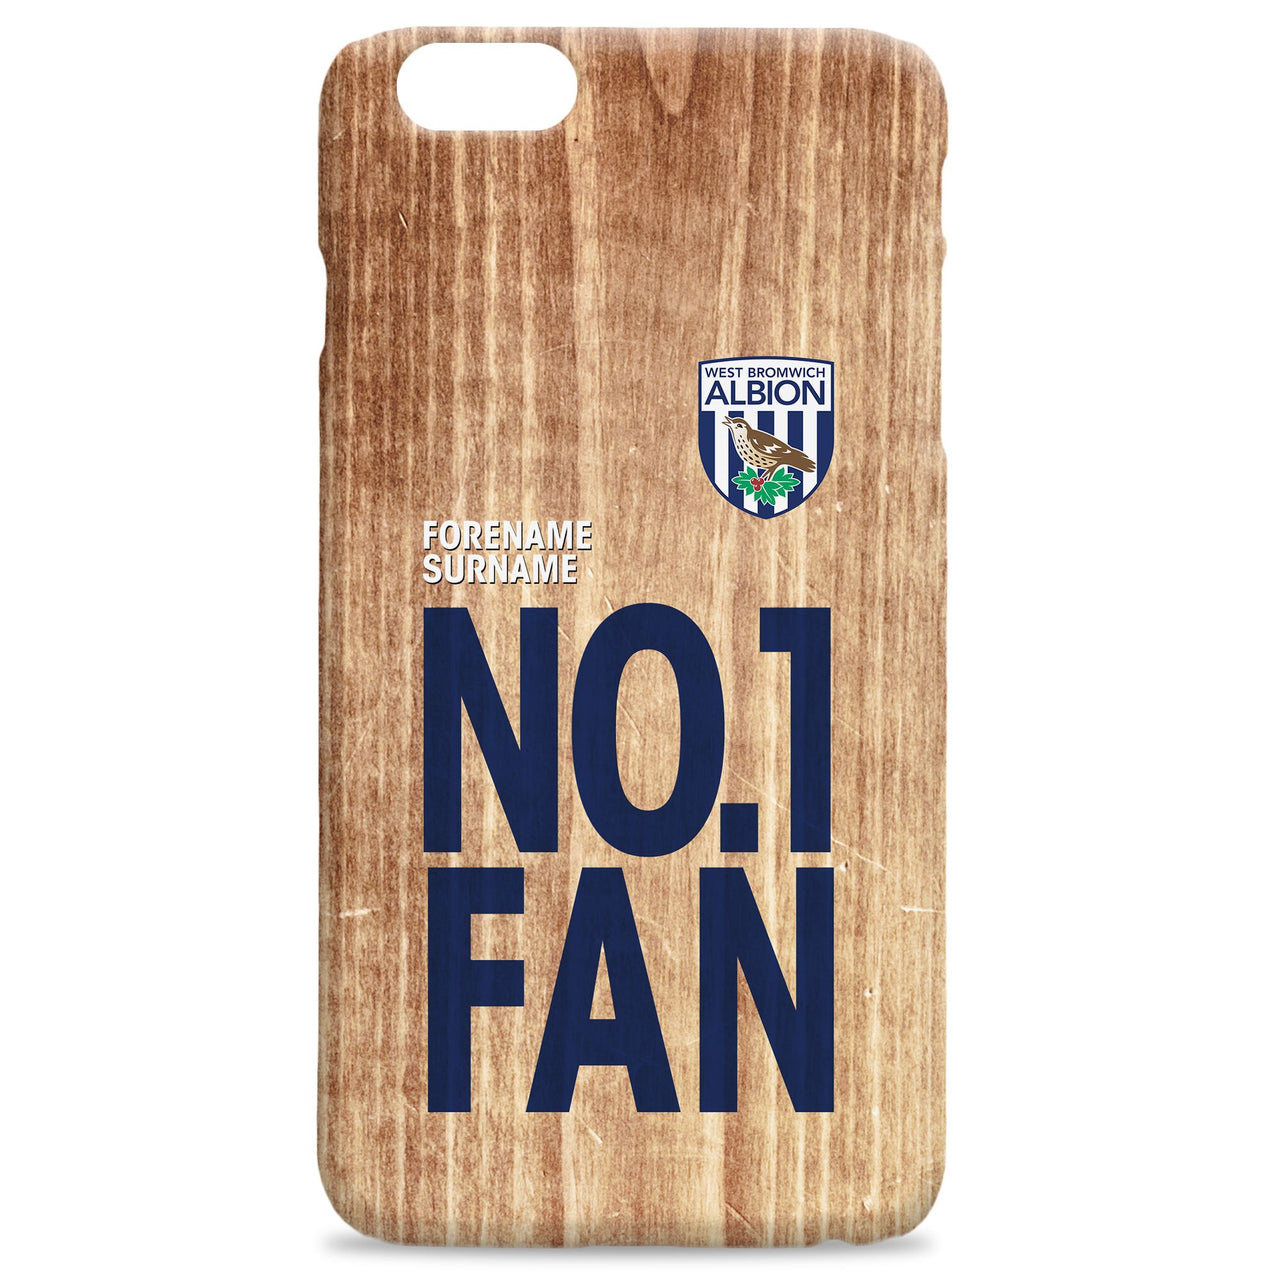 West Bromwich Albion No 1 Fan Hard Back Phone Case, Gifts